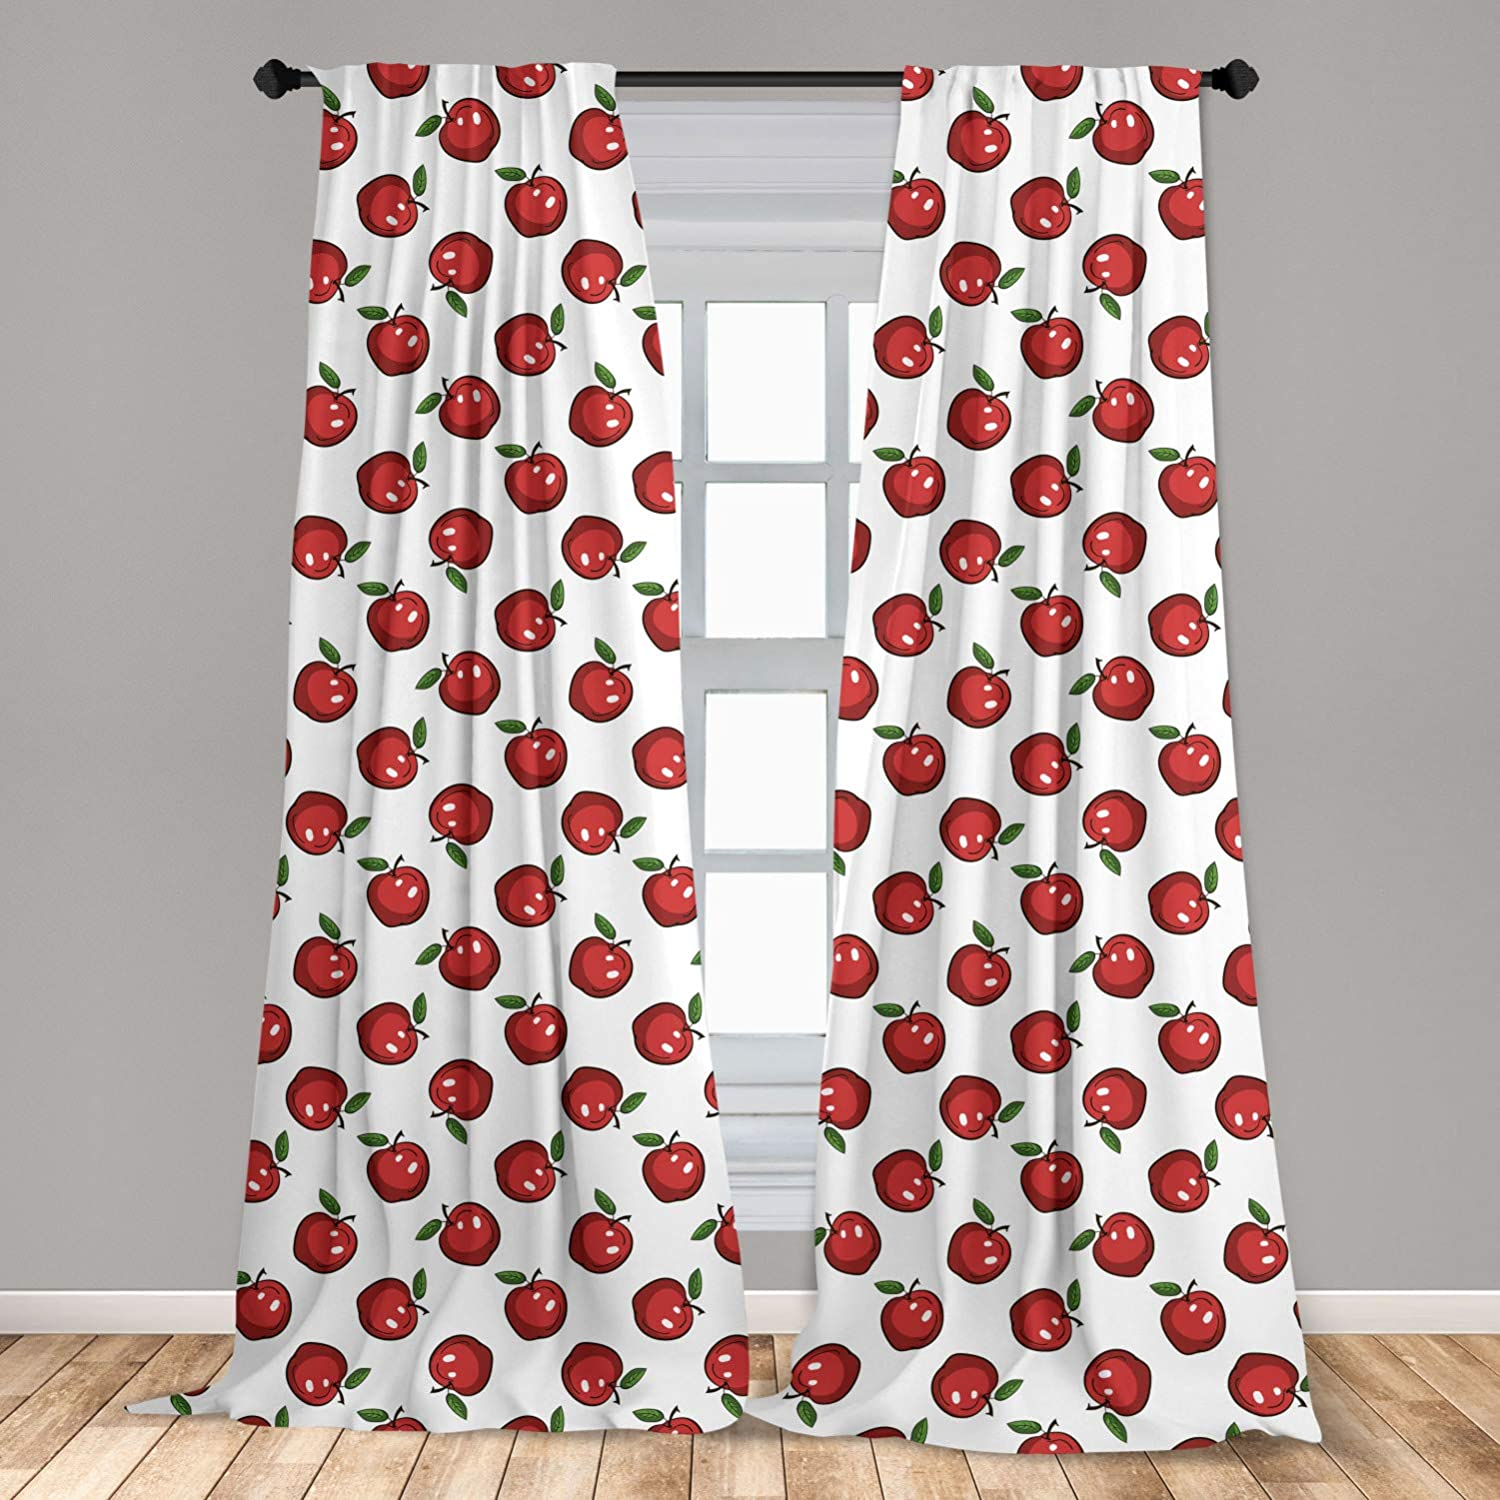 Ambesonne Apple Window Curtain Hand Drawn Cartoon Apples Organic Juicy Delicious Fruit Healthy Eating, Lightweight Decorative Panels Set of 2 with Rod Pocket, 56